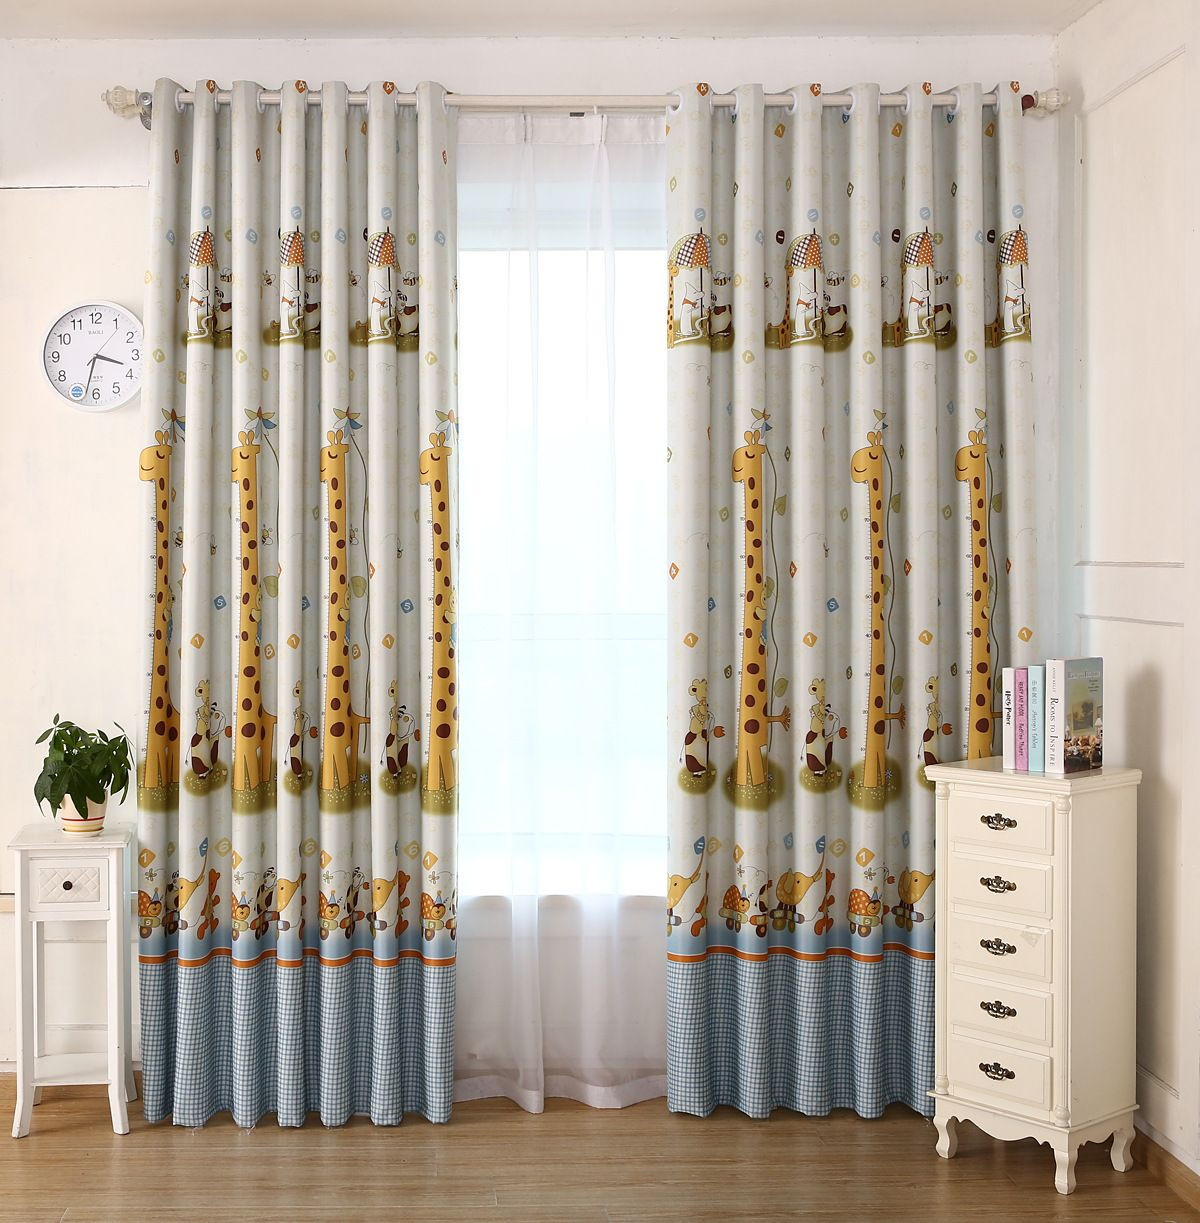 Kids Bedroom Curtains Glamorous 2017 Modern Kids Fabric Giraffe Pattern Shade Blinds Thick Window 2018